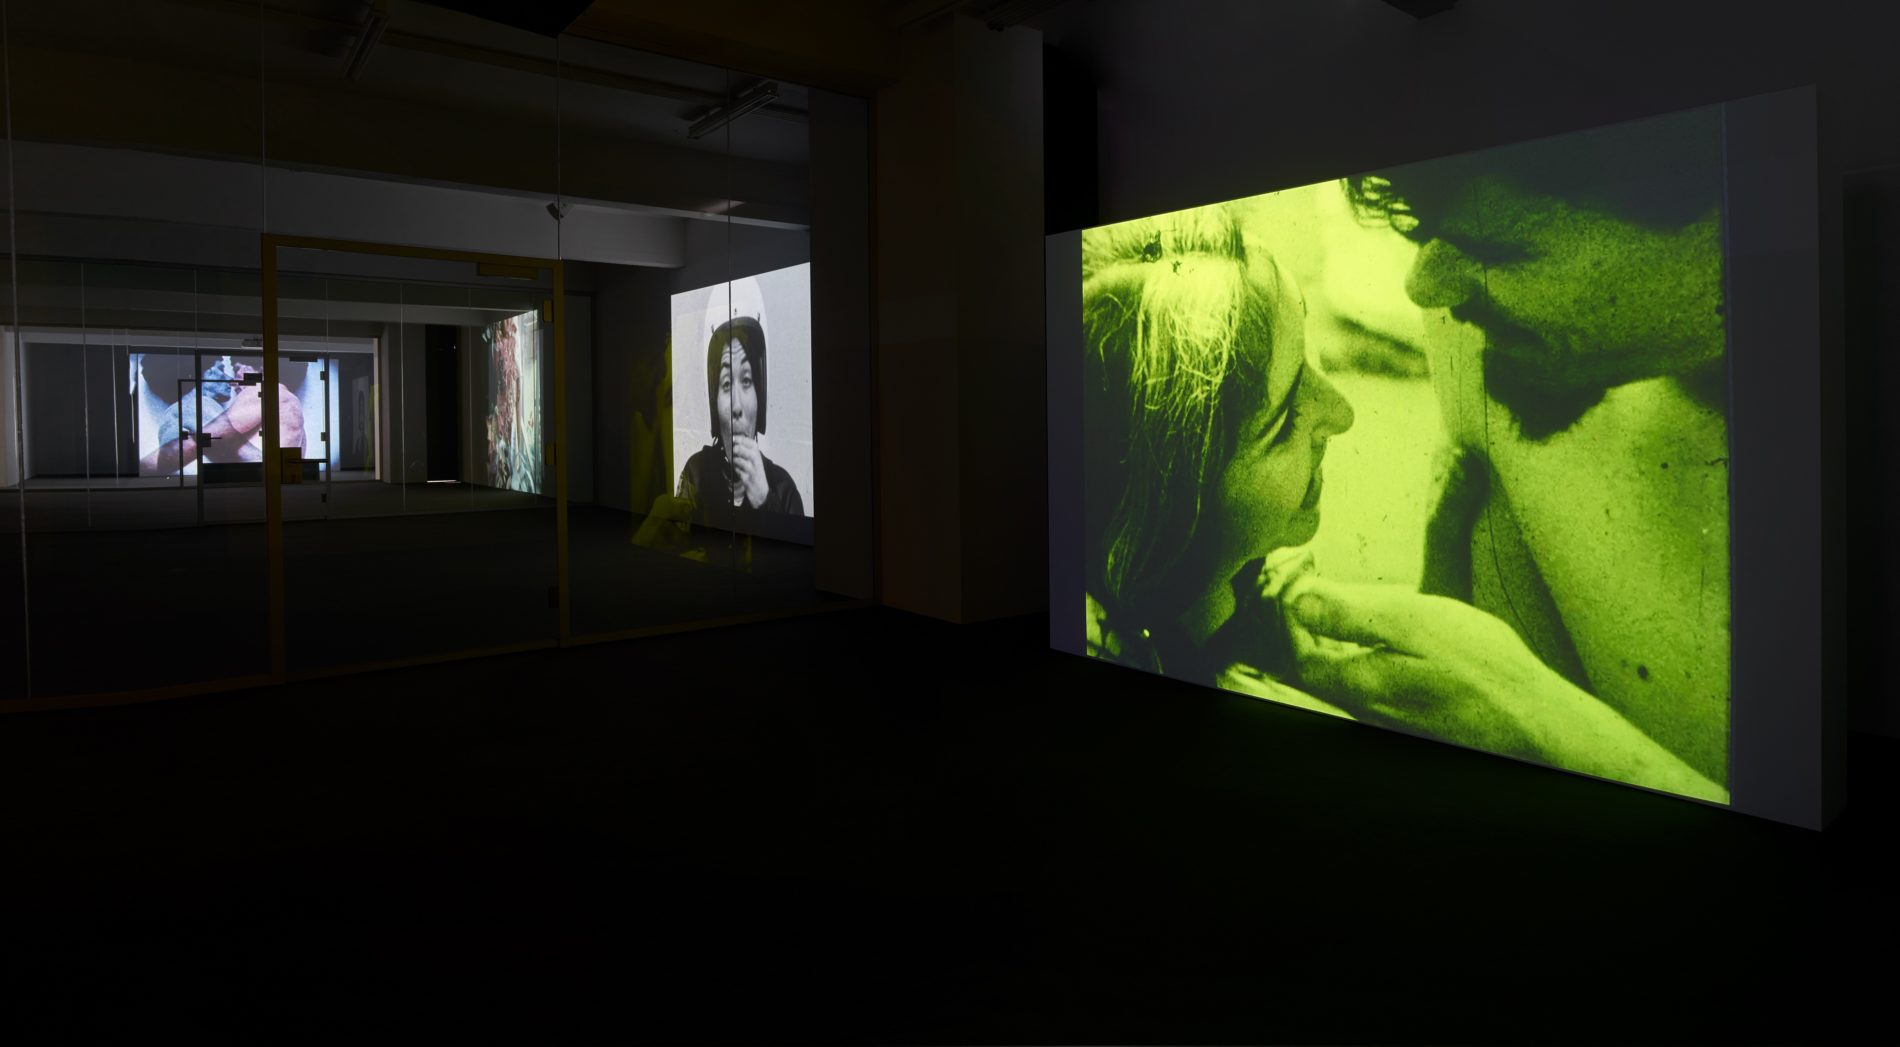 JSC ON VIEW: LUTZ BACHER, BARBARA HAMMER, CAROLEE SCHNEEMANN / WORKS FROM THE JULIA STOSCHEK COLLECTION / 21 JULY 2019 – 22 DECEMBER 2019